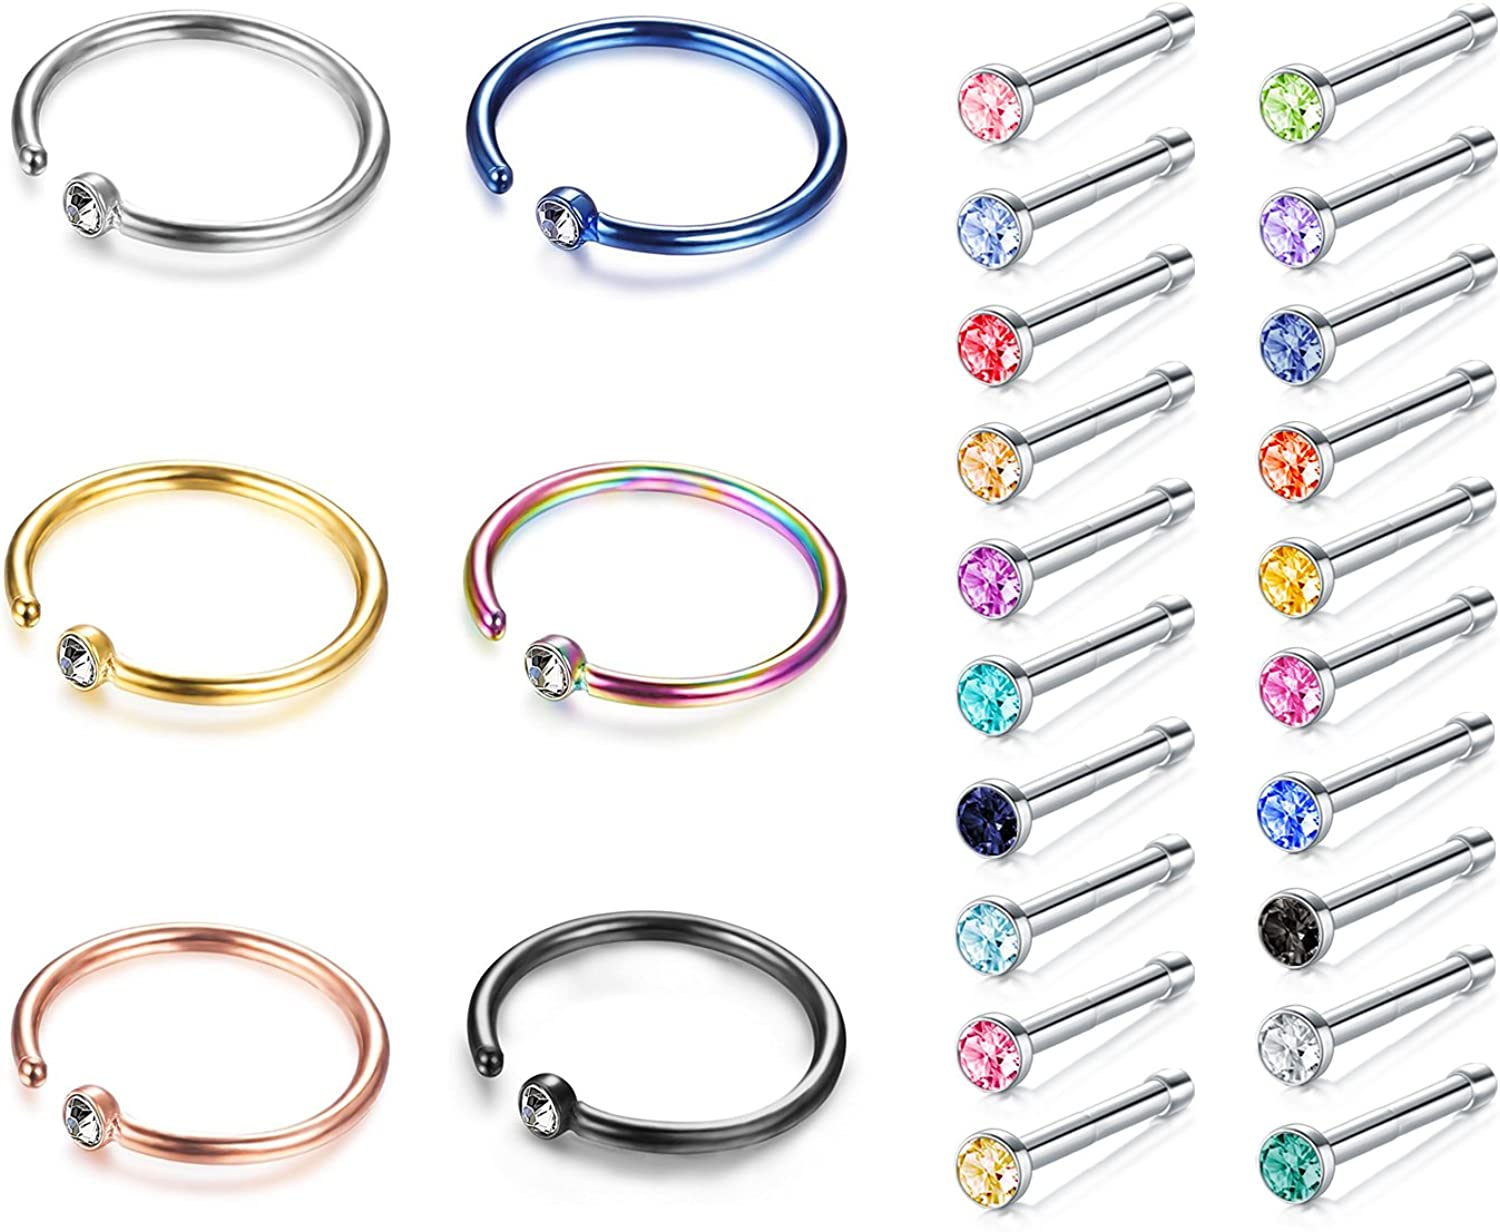 JFORYOU Nose Rings Studs Screw 316L Steel 22G Surgical Free shipping / New 2021